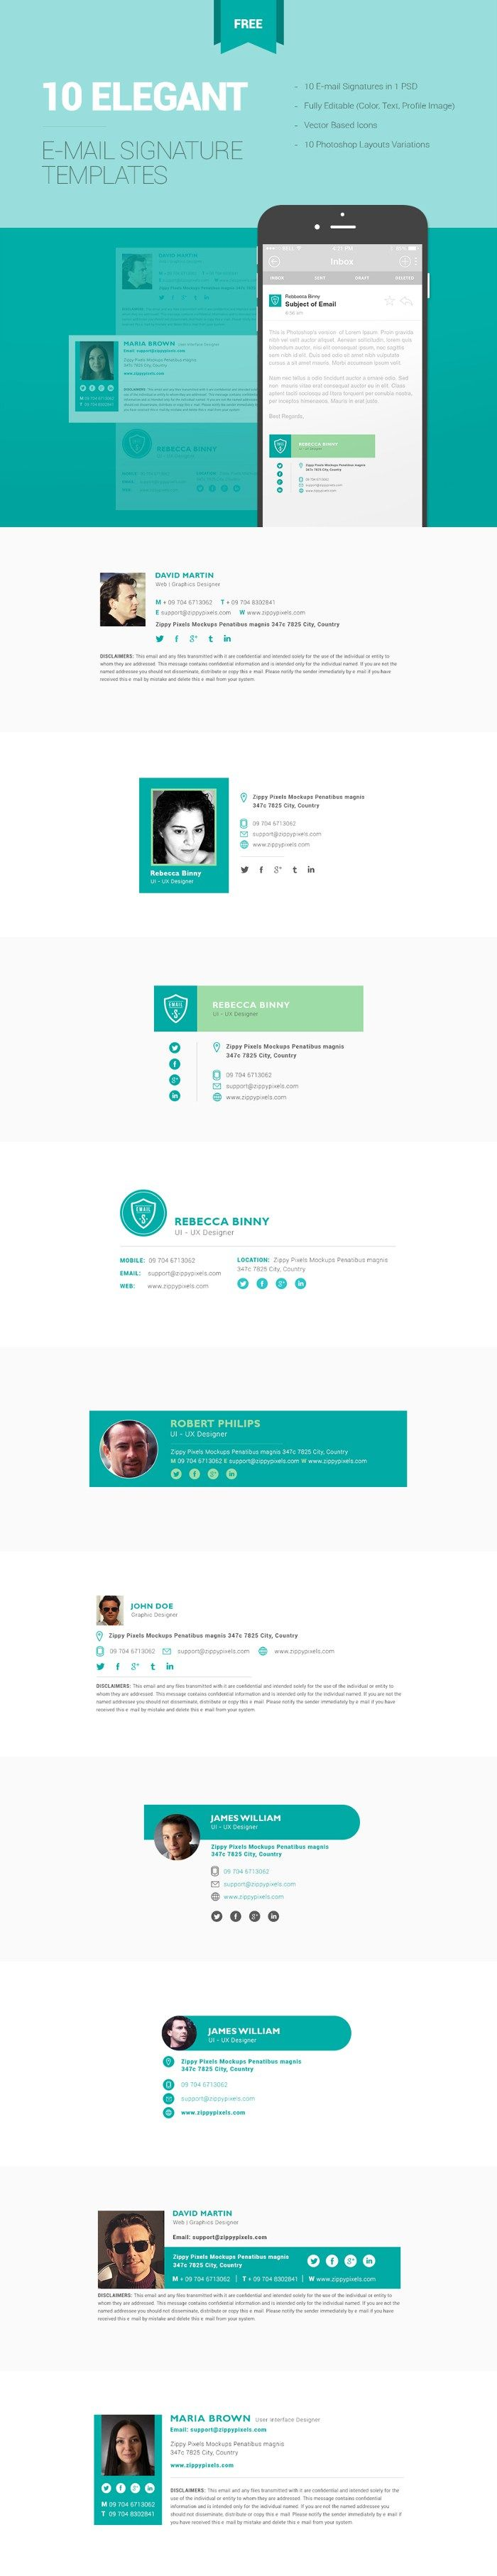 25 Best Ideas About Email Signature Templates On